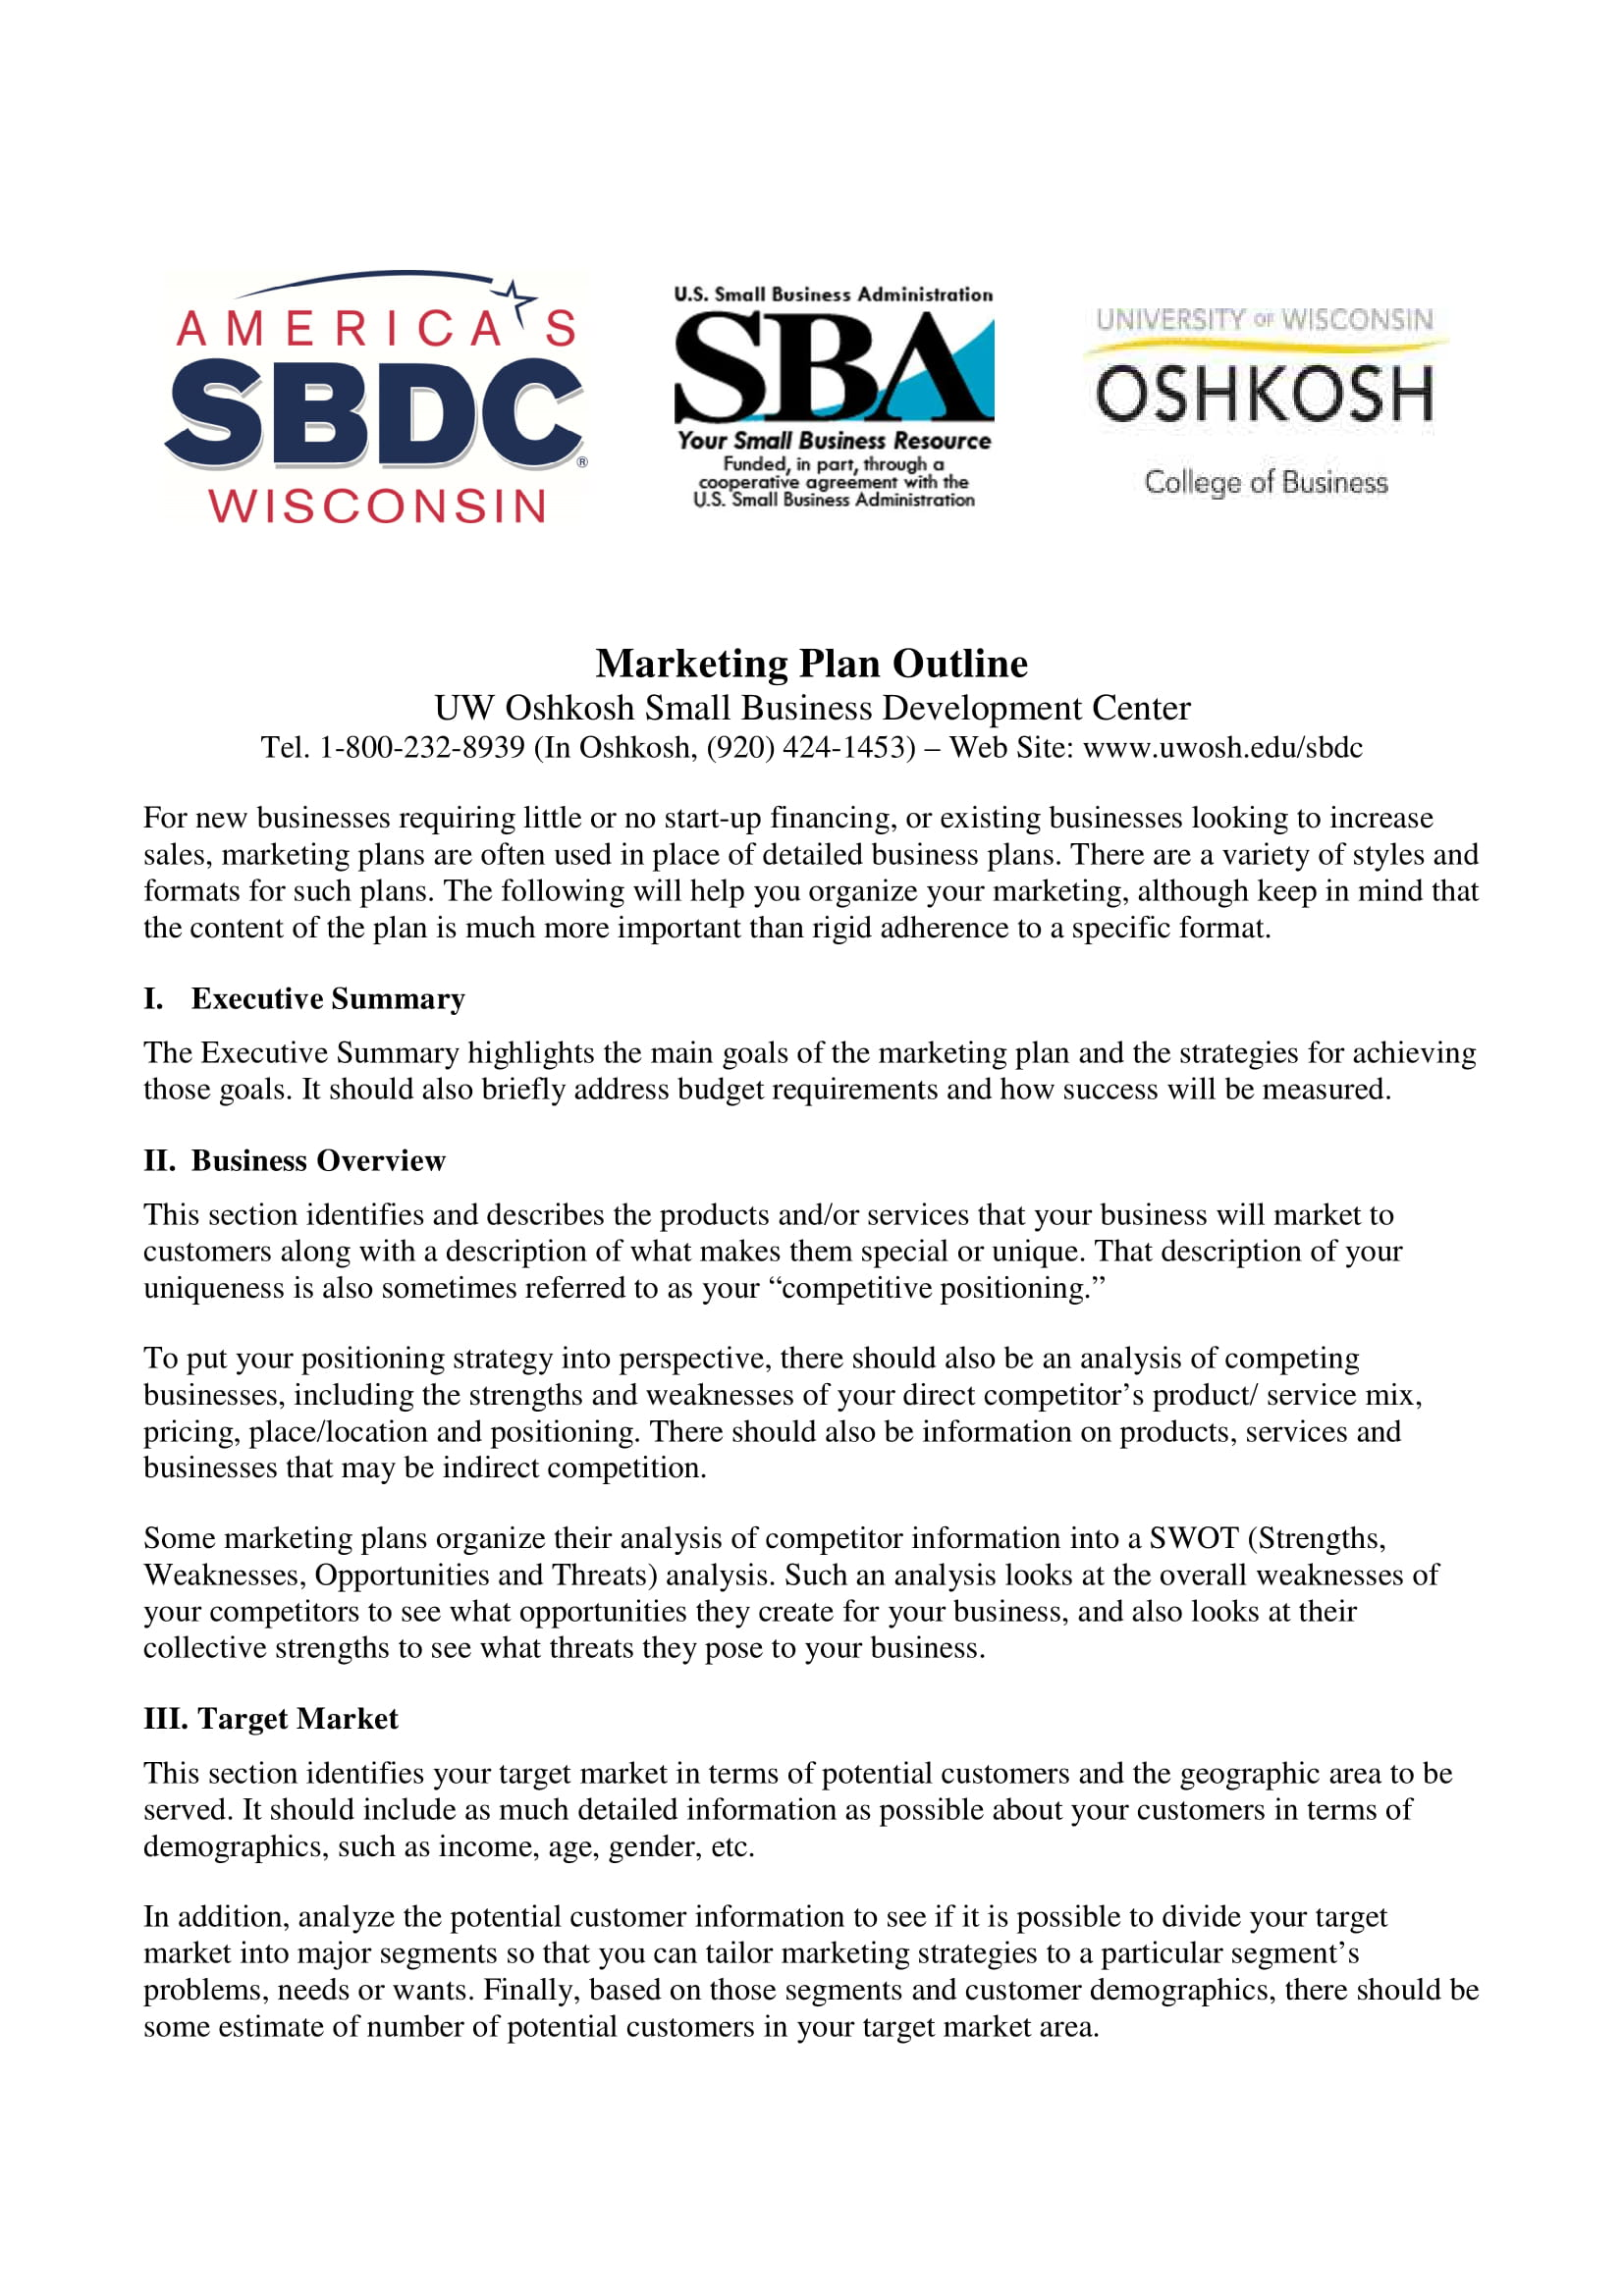 sample marketing plan2